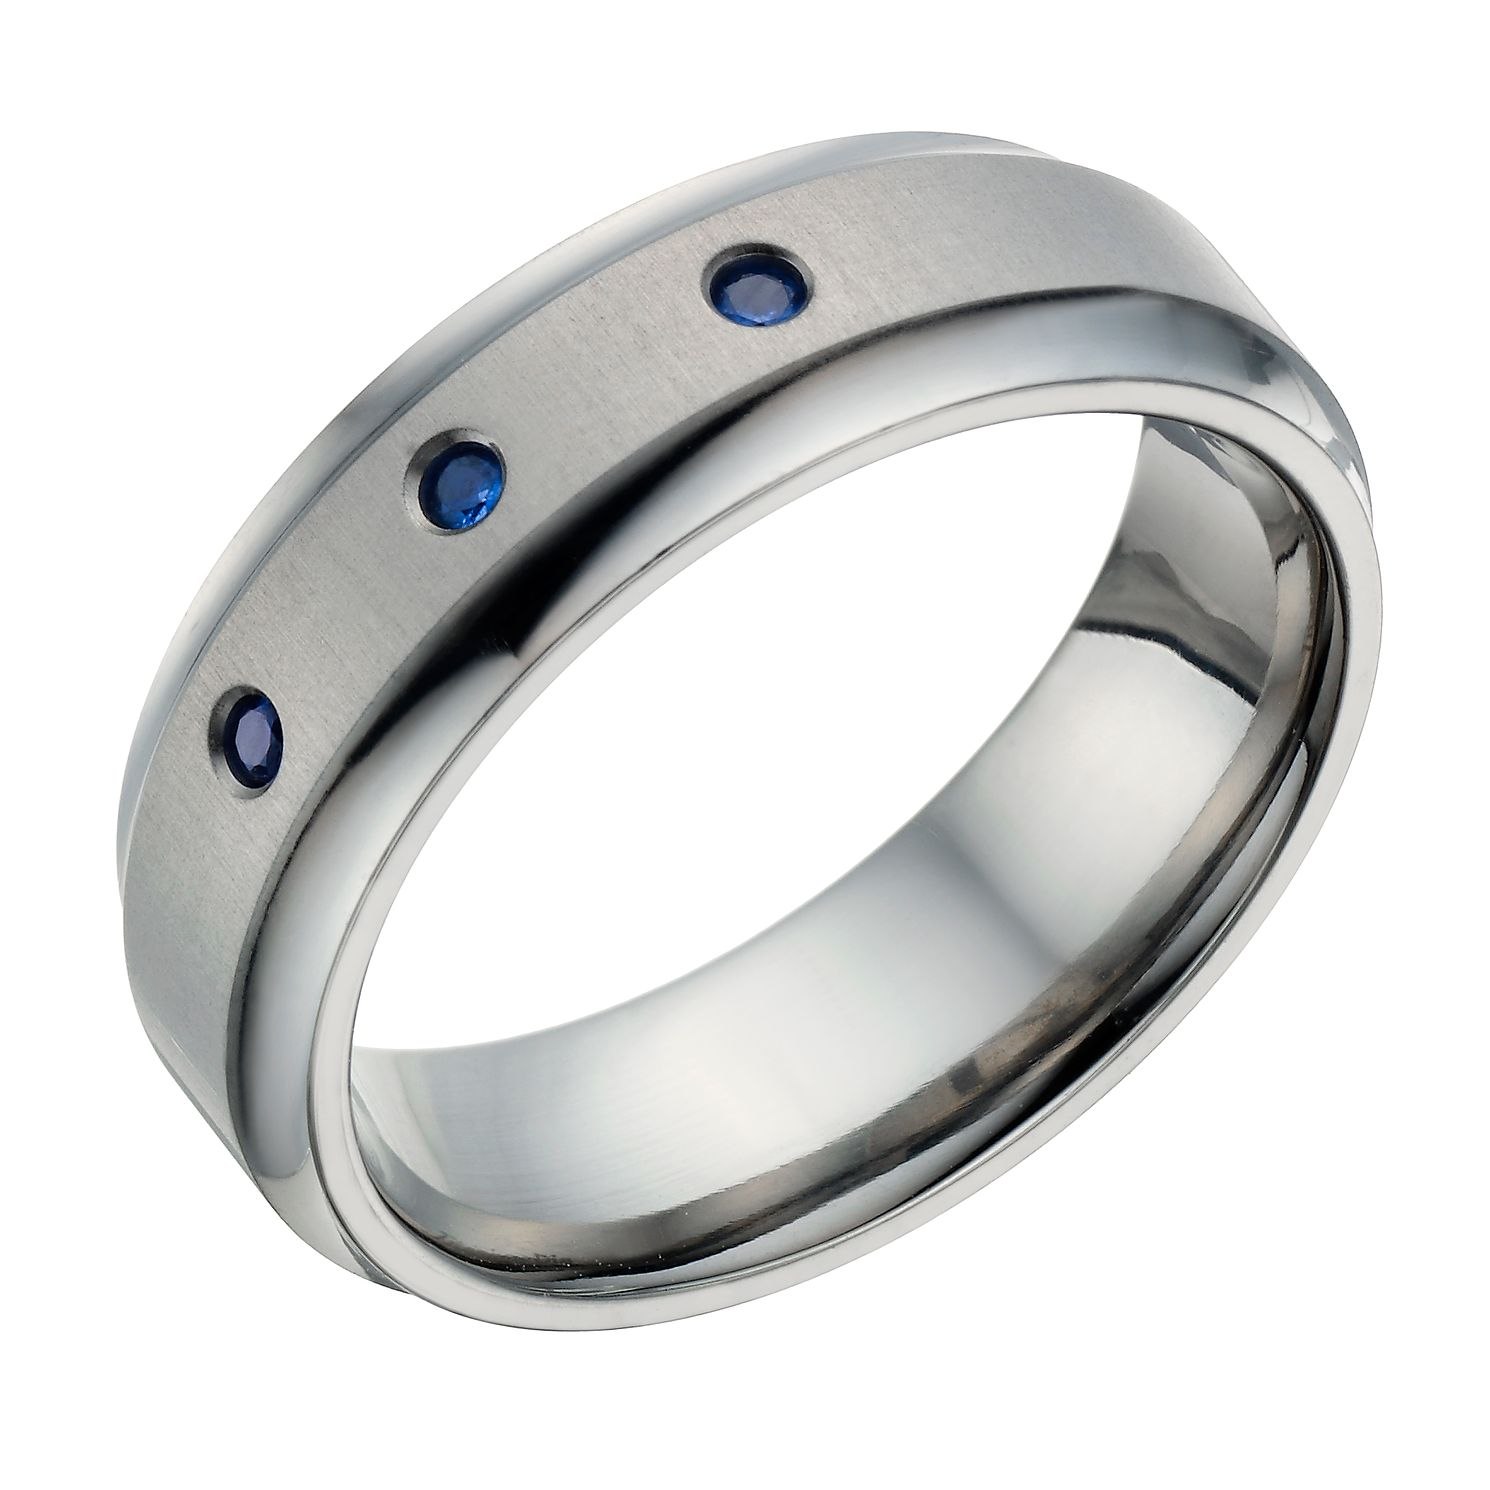 rings chrome concave w xf coinedge finish band wedding ring satin zoom loading grooms cobalt